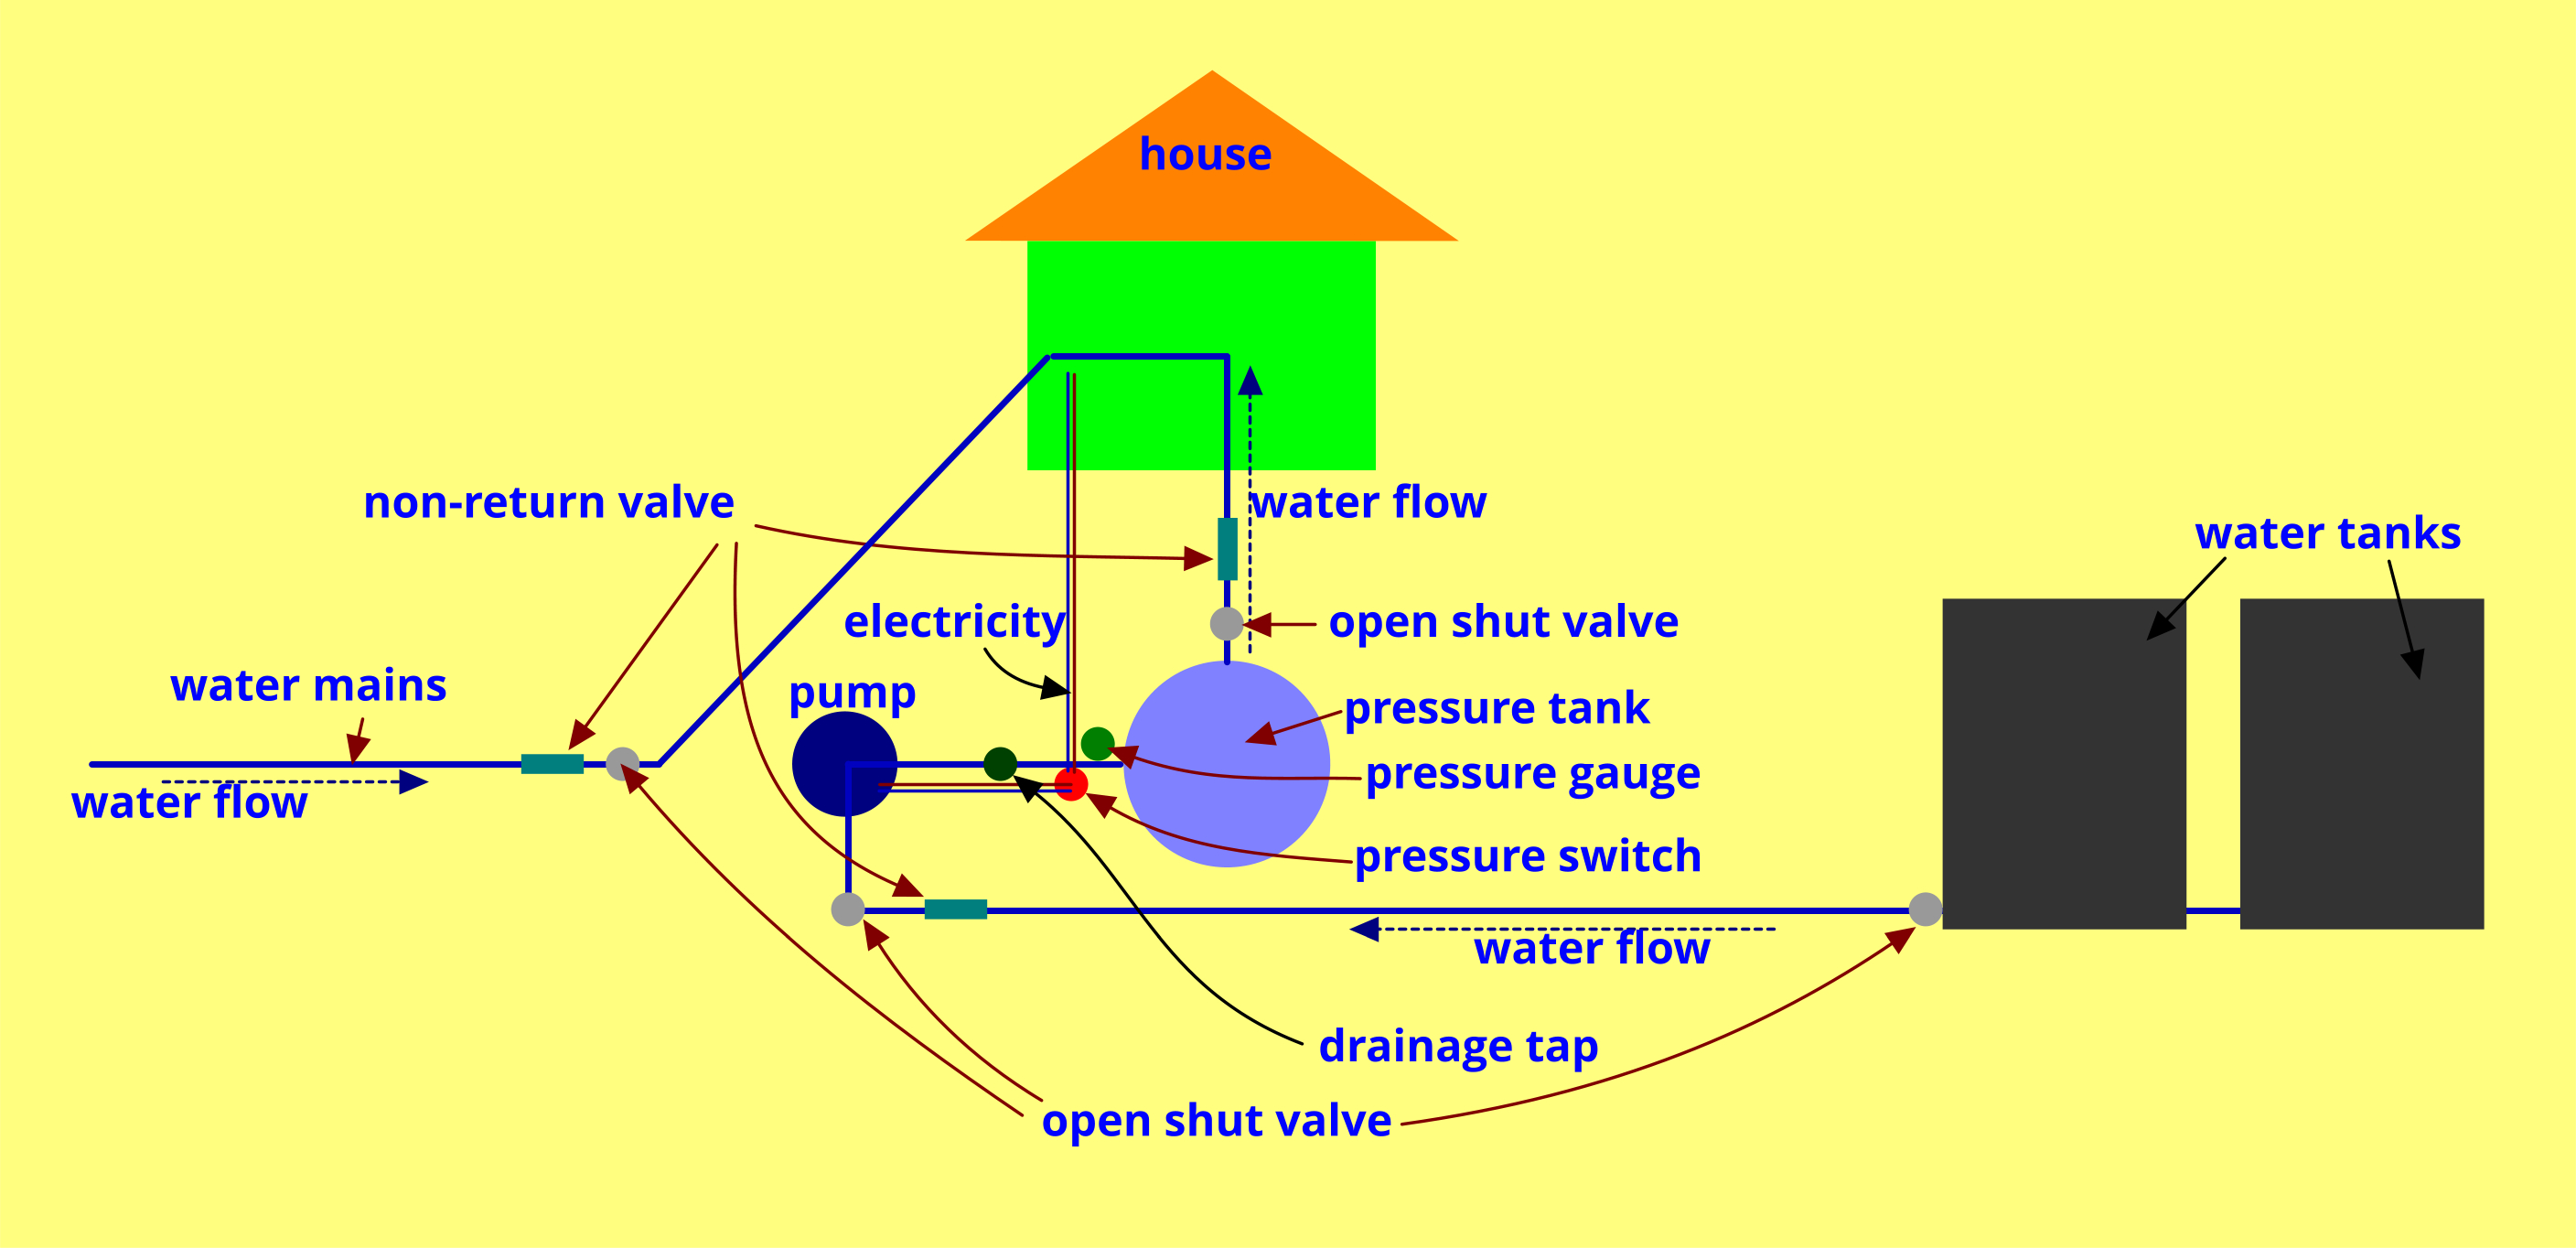 Water Flow Pressure Switch Wiring Diagram Rainwater Home Supply Assembly Pump Tanks Etc Heating Pomp Setup Skematies